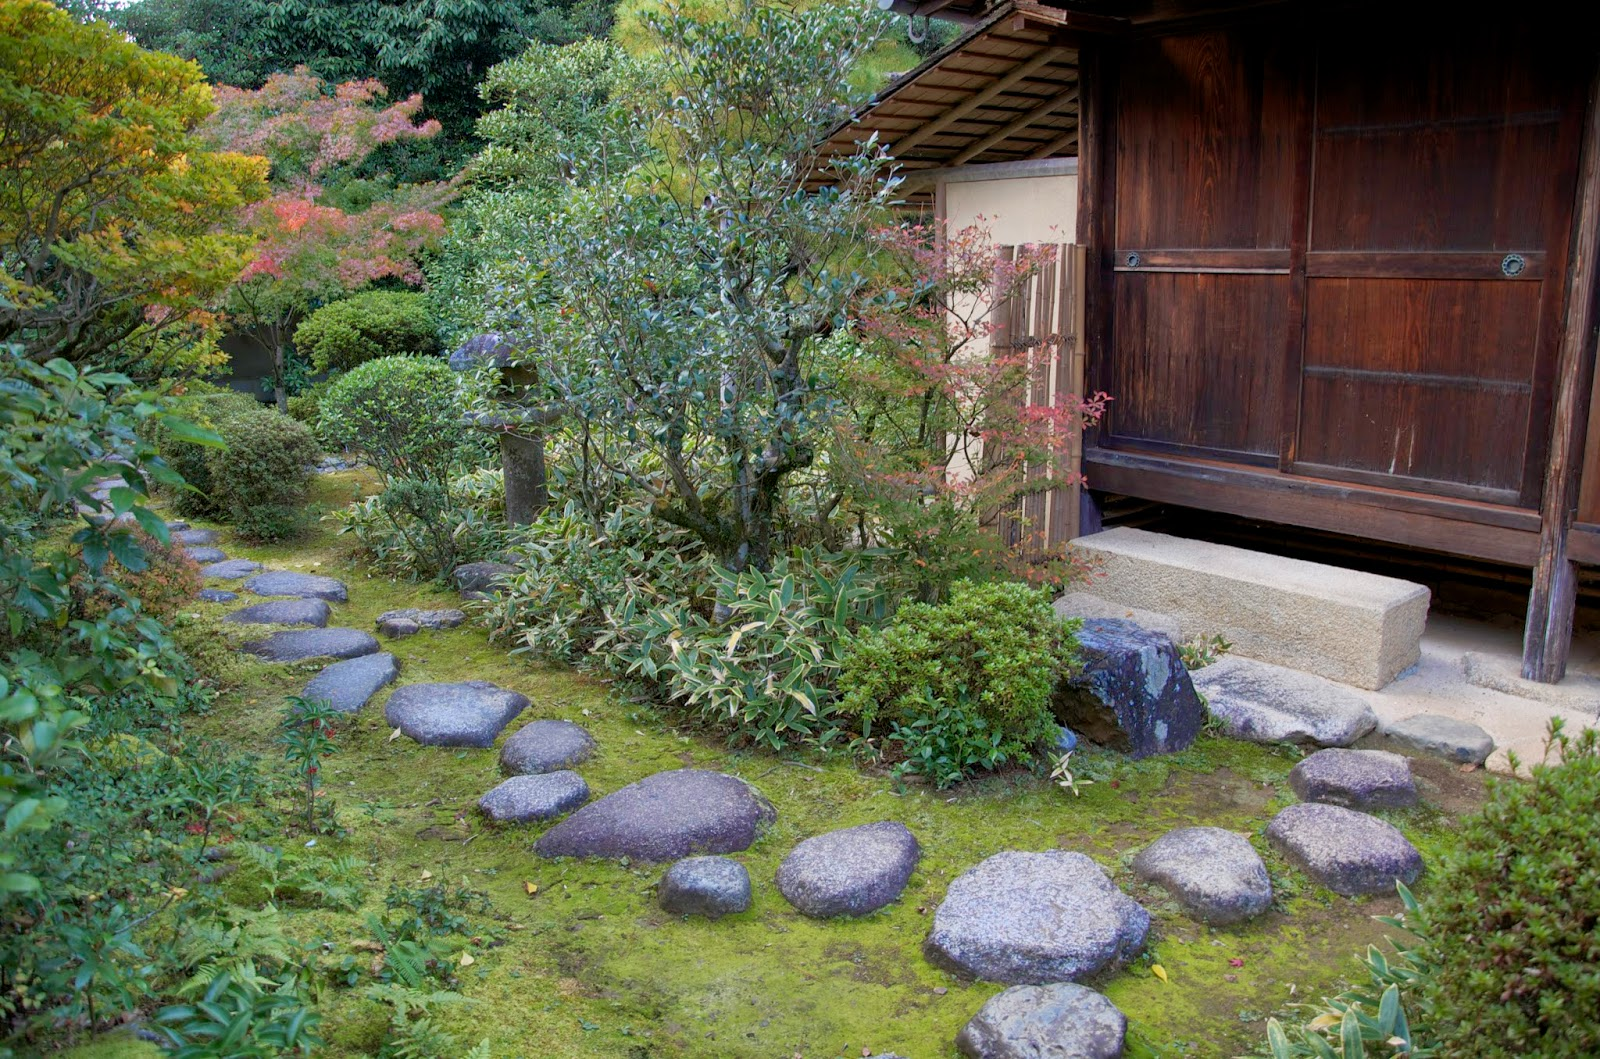 Path Leafing To A Shoe Leaving Stone Koto In